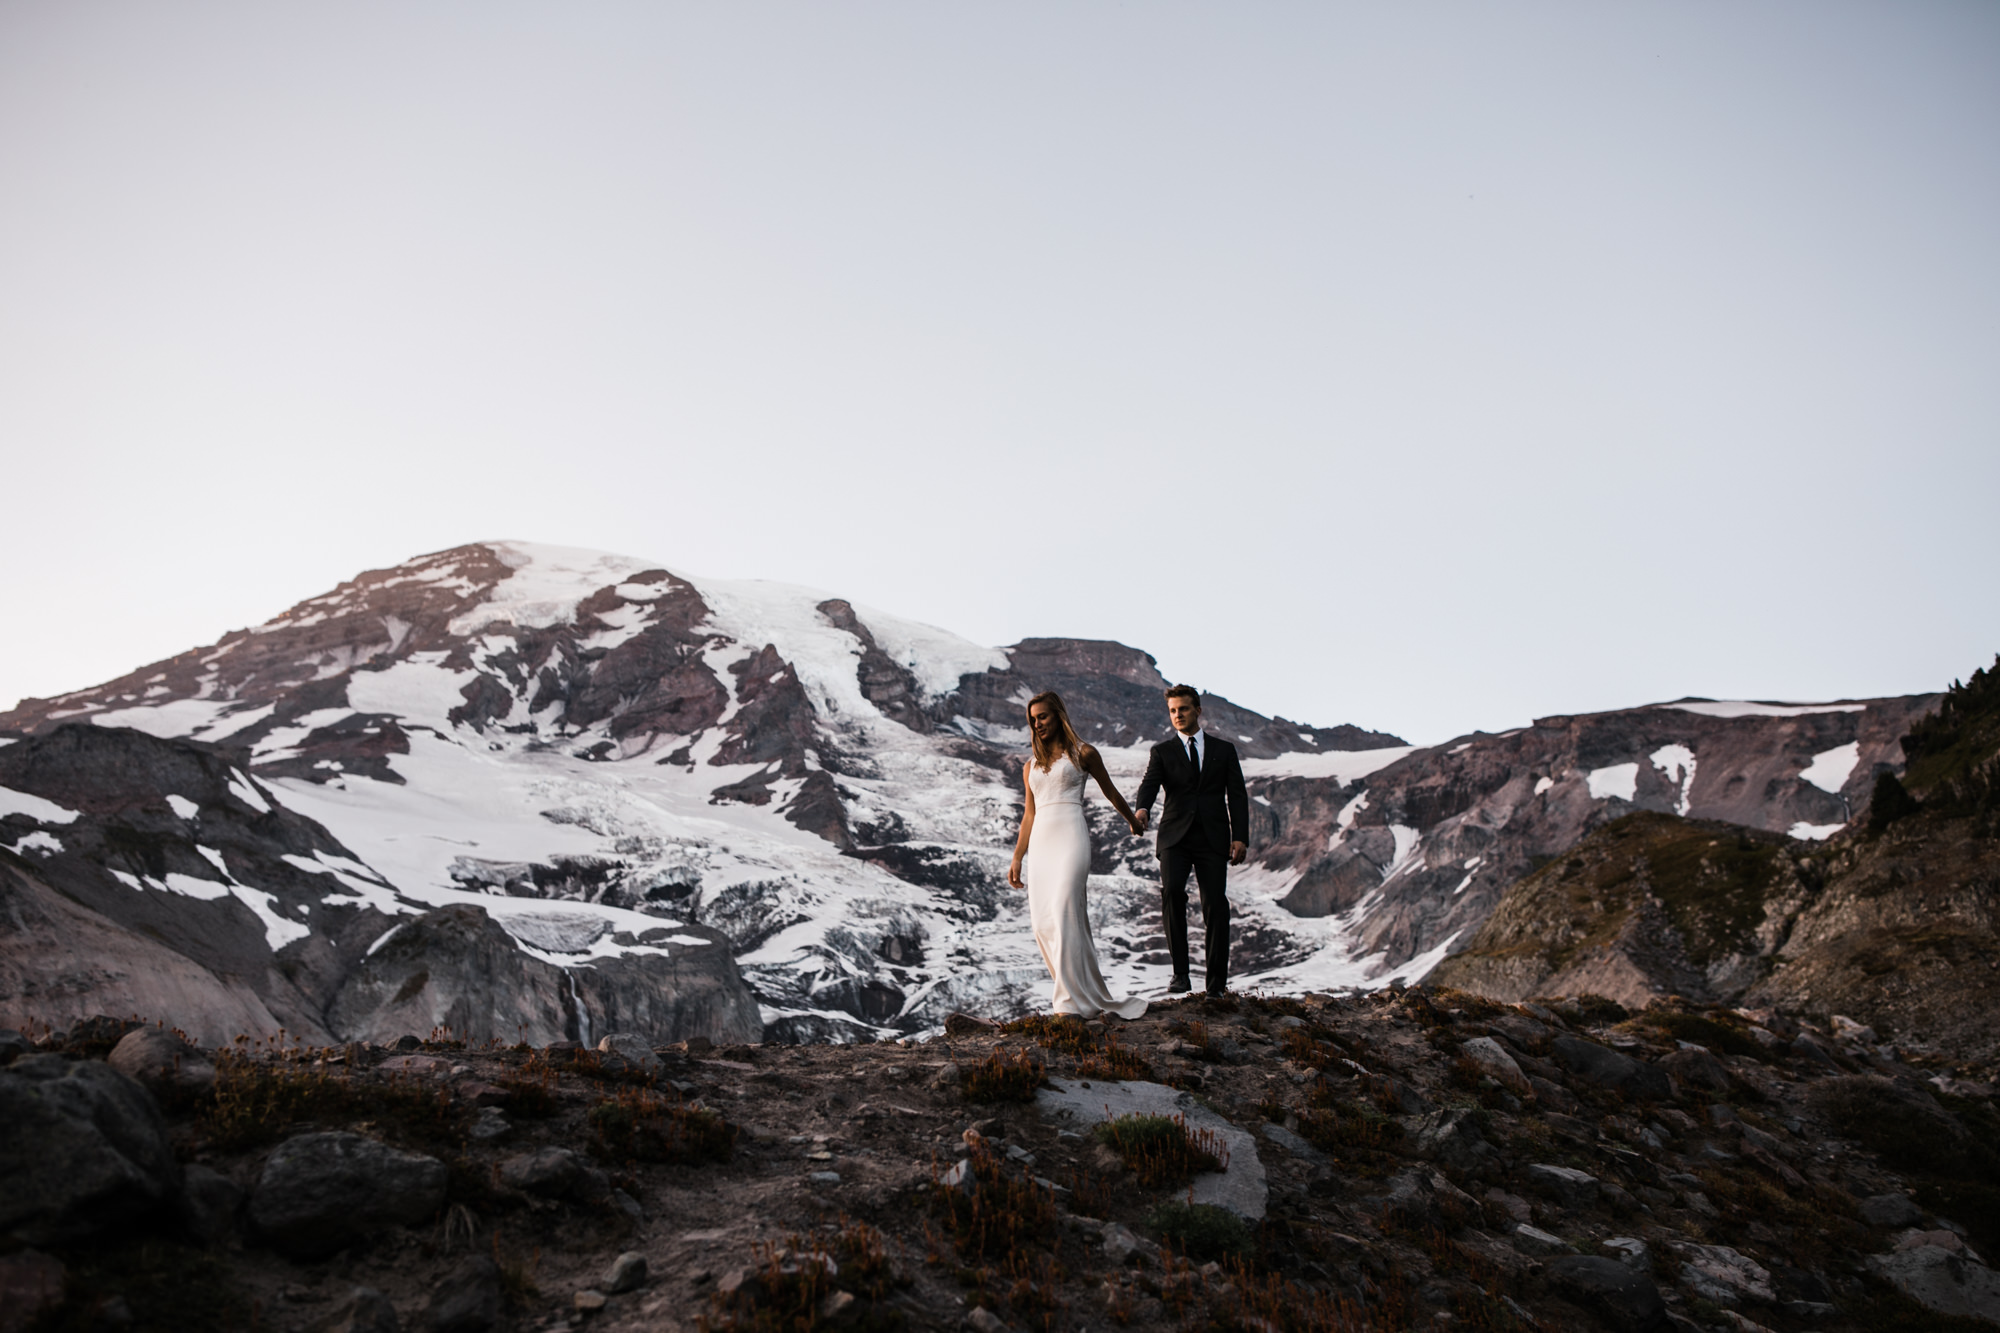 jena + kyler's wedding day-after session in mount rainier national park |washington adventure wedding photographer | the hearnes adventure photography | www.thehearnes.com